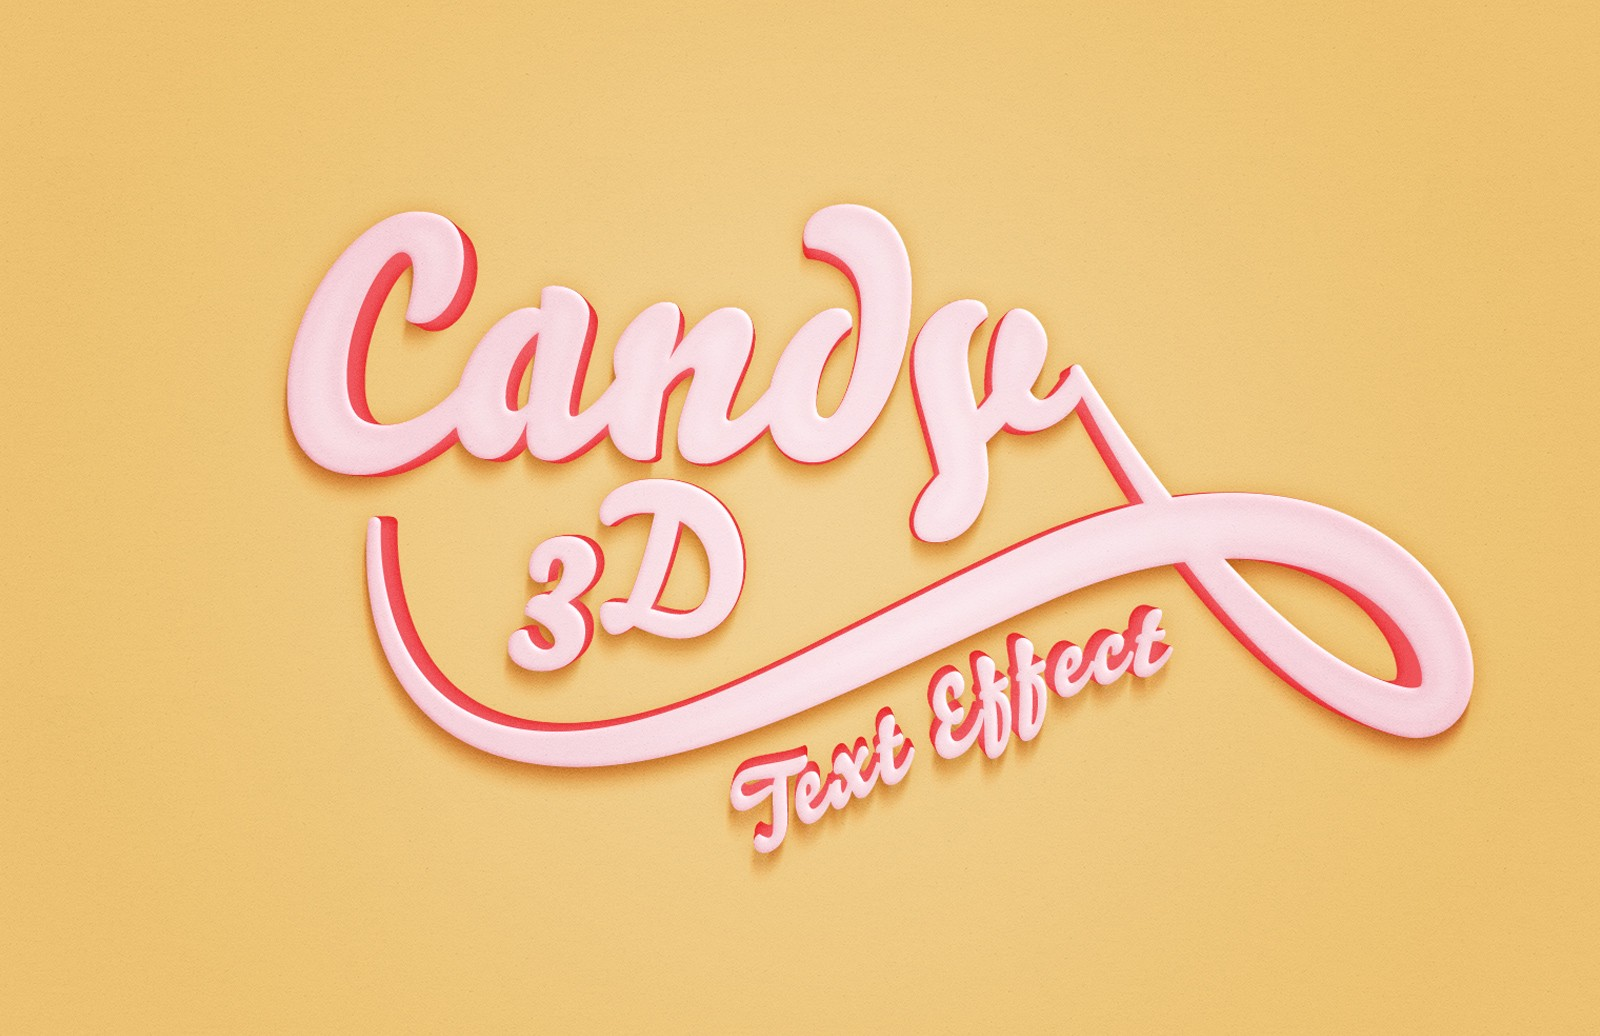 Large Candy 3 D  Text  Effect  Preview 1